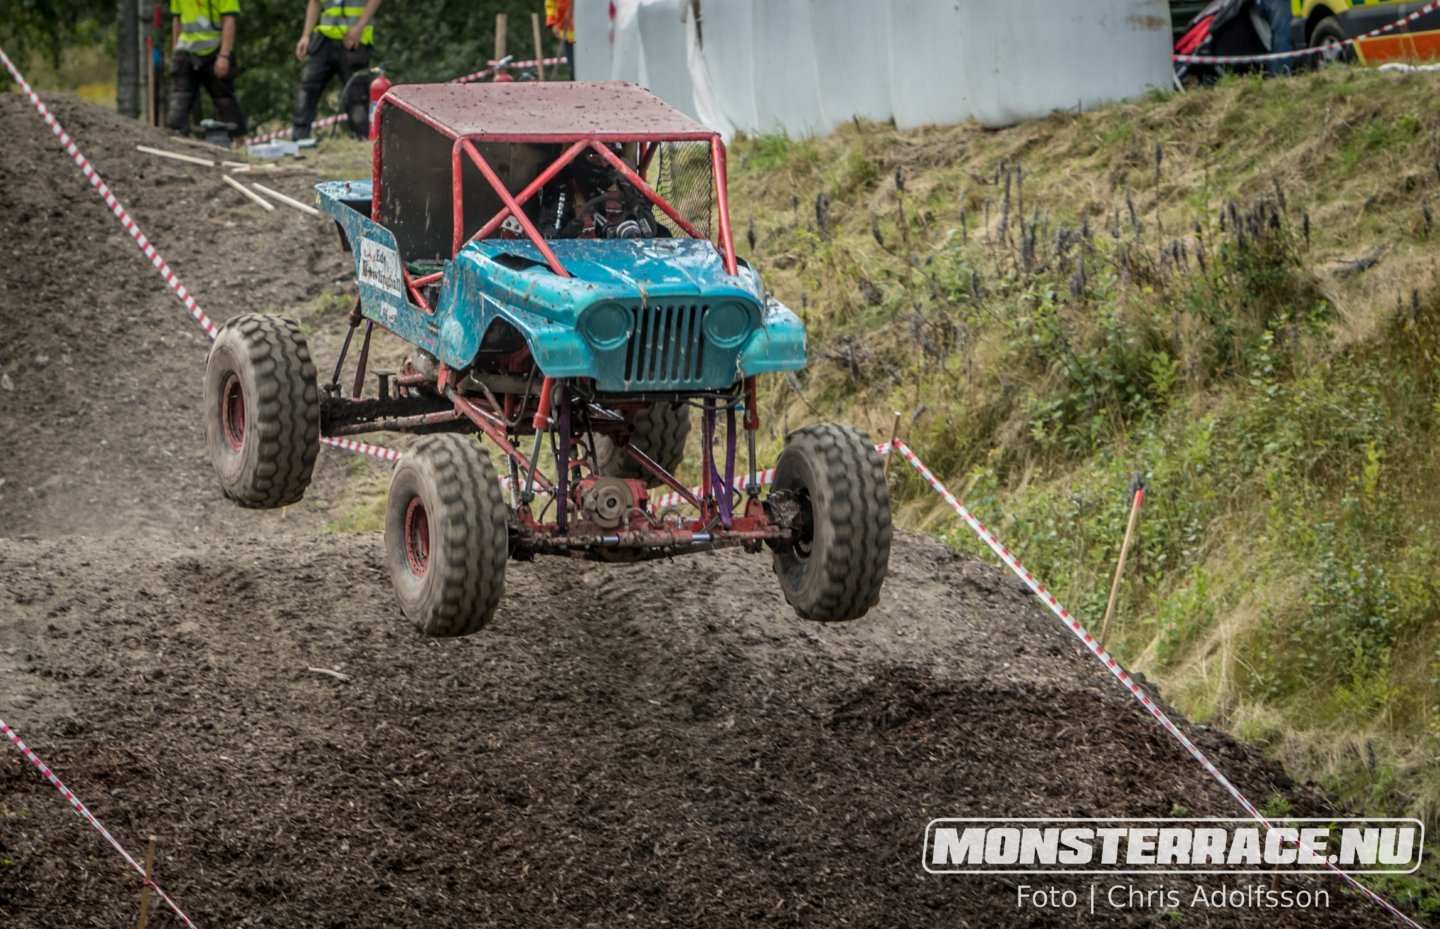 Monsterrace Ed dag 1 (215)